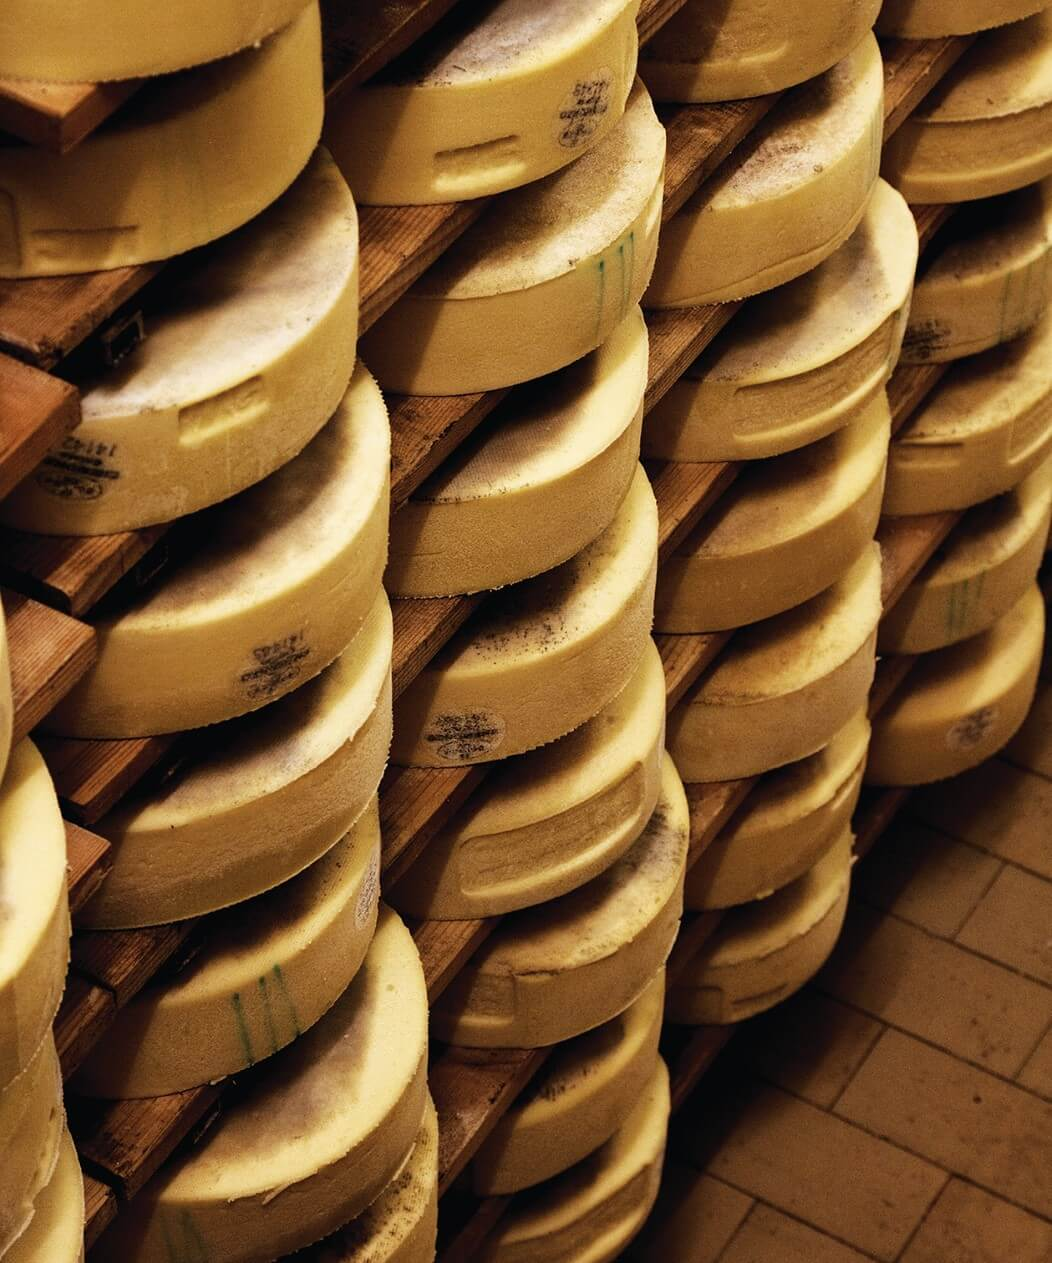 Wheels of cheese ageing